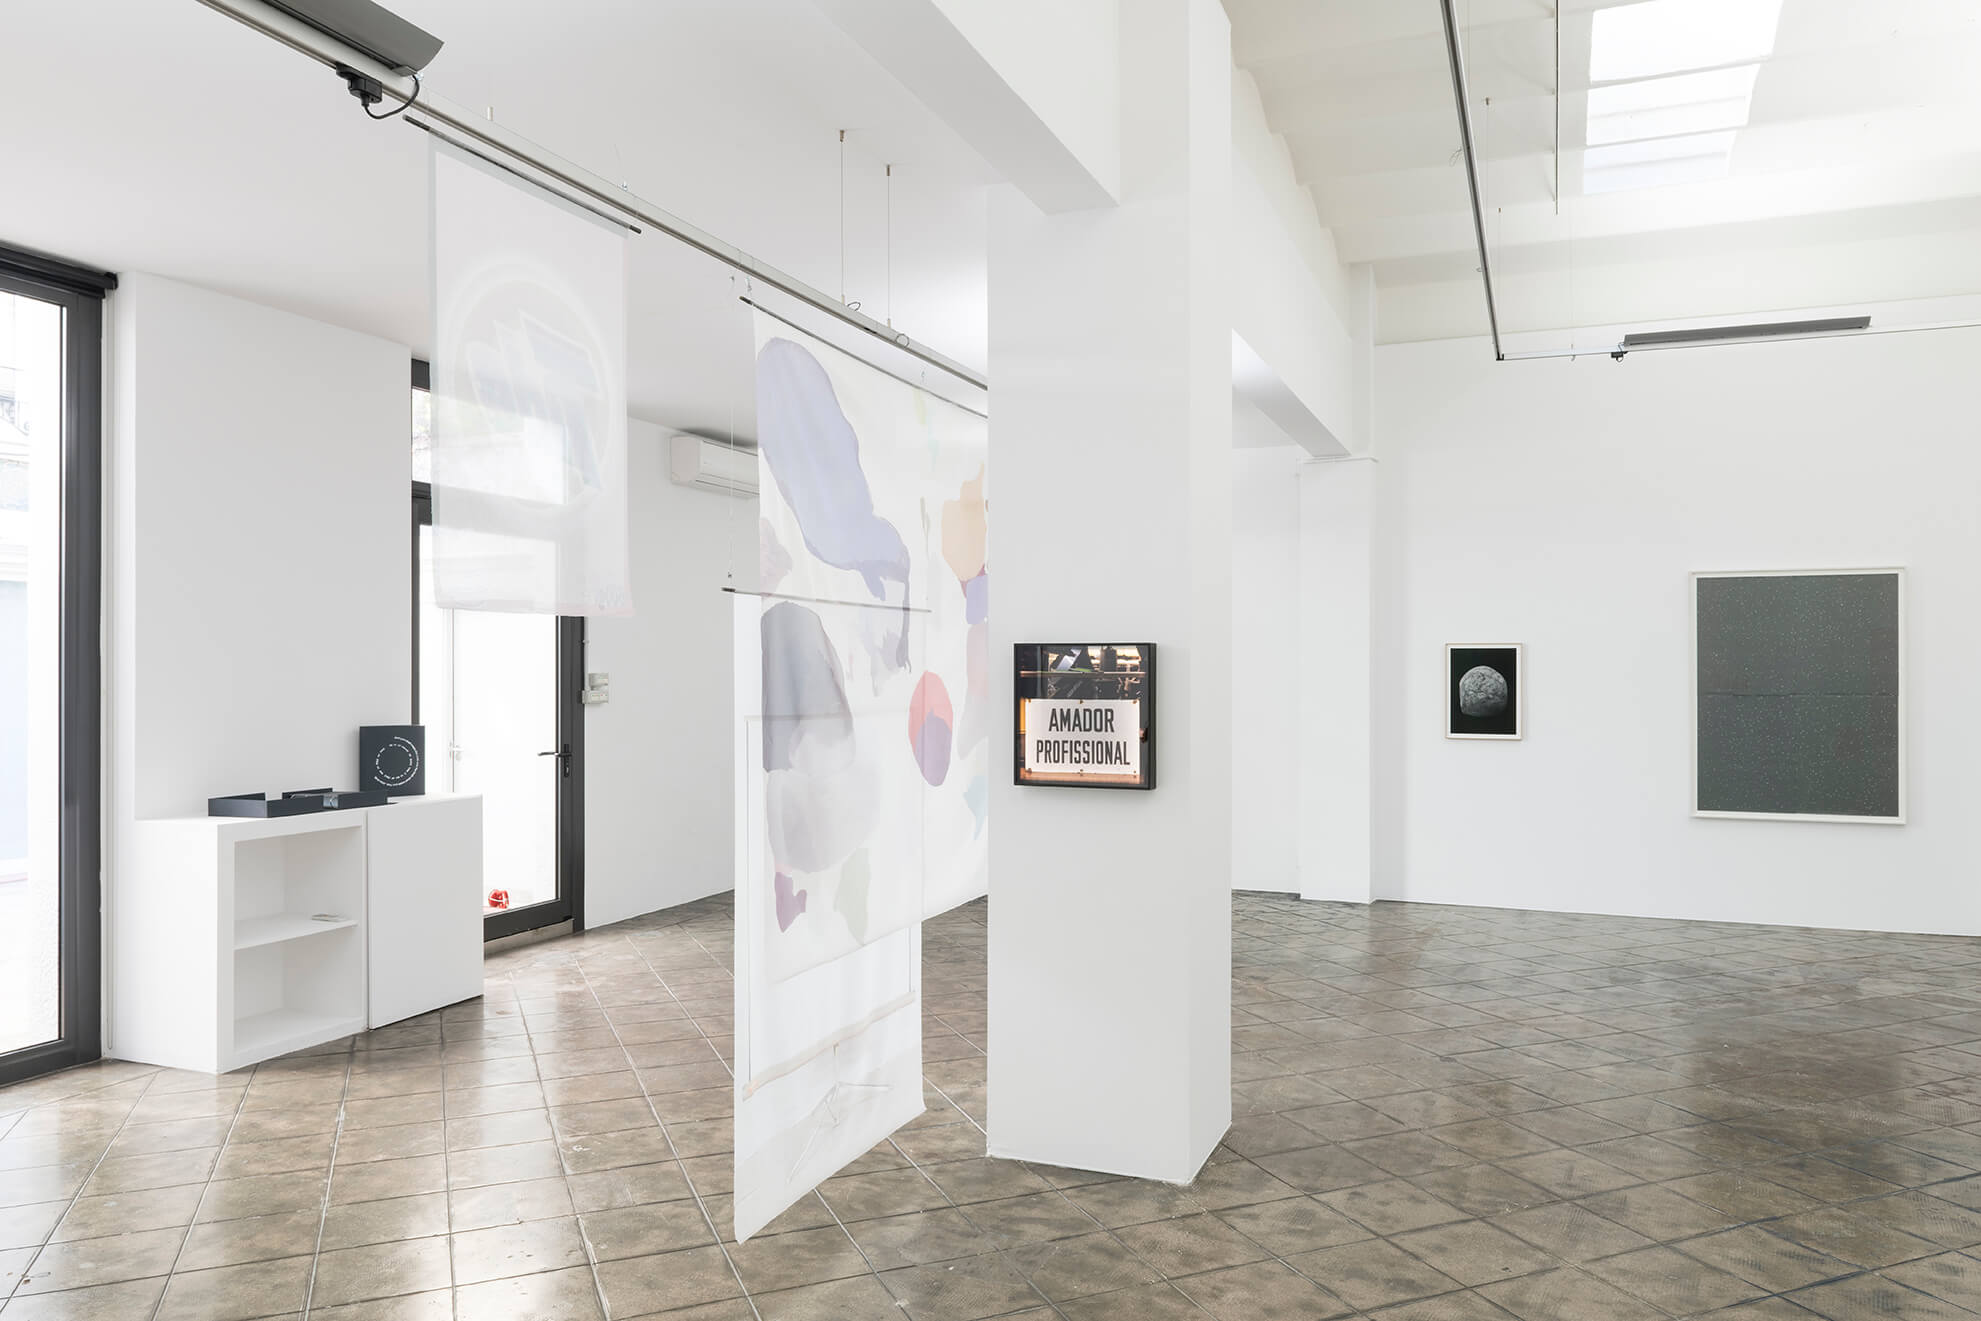 Installation view: The Imaginary Museum, ProjecteSD | El Museu Imaginari / El Museo Imaginario / The Imaginary Museum | ProjecteSD